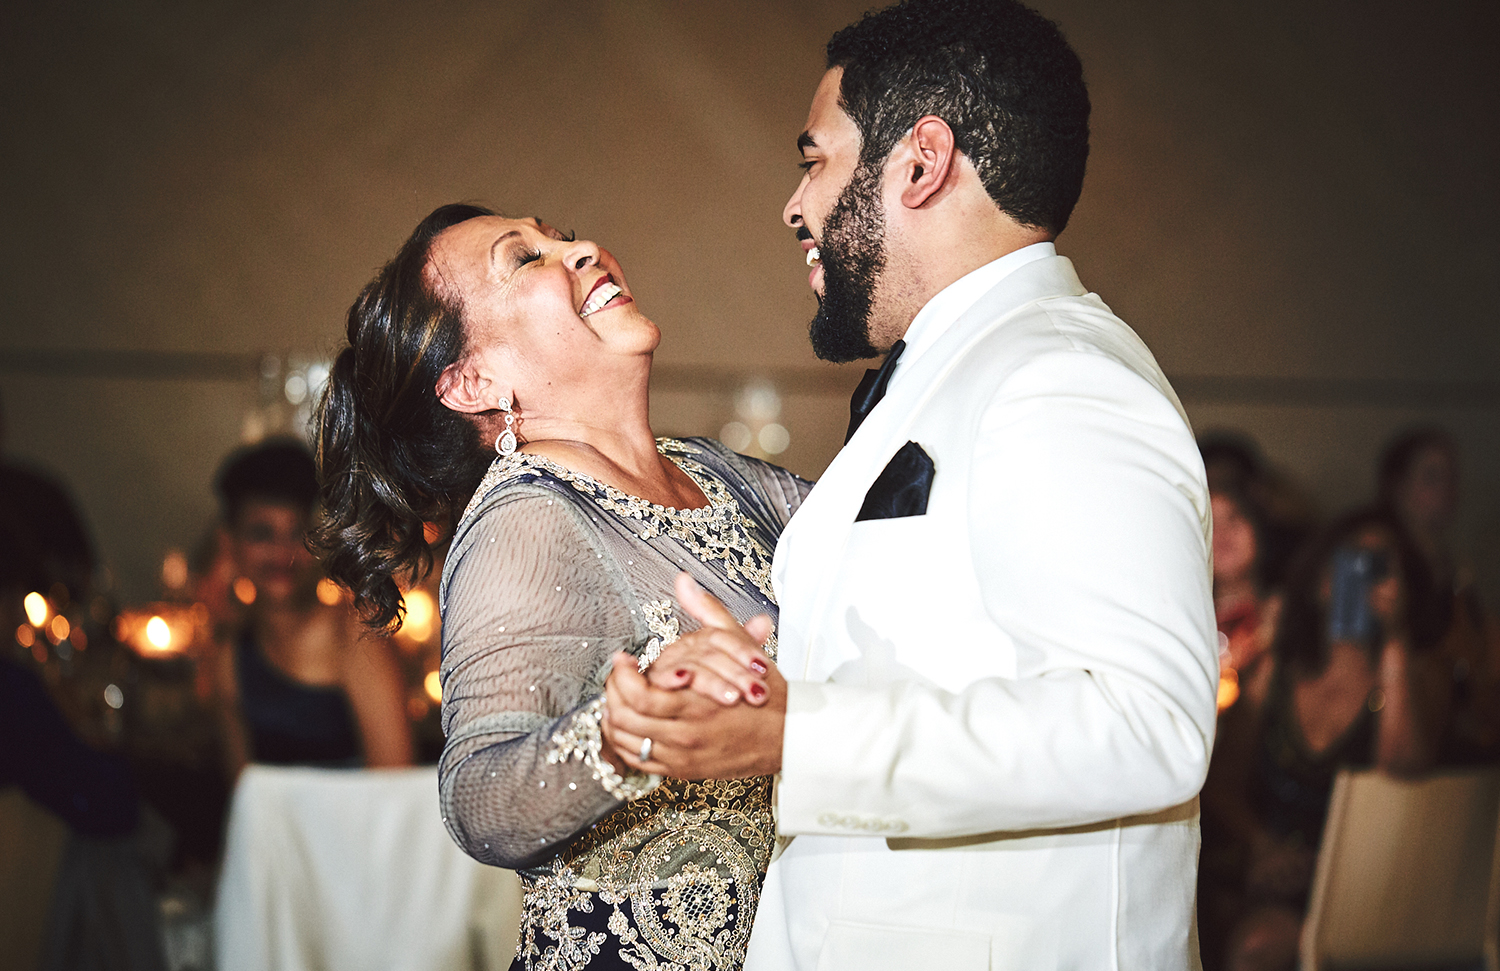 170930_WilliamValeWeddingPhotography_BrooklynWeddingPhotographer_By_BriJohnsonWeddings_0160.jpg